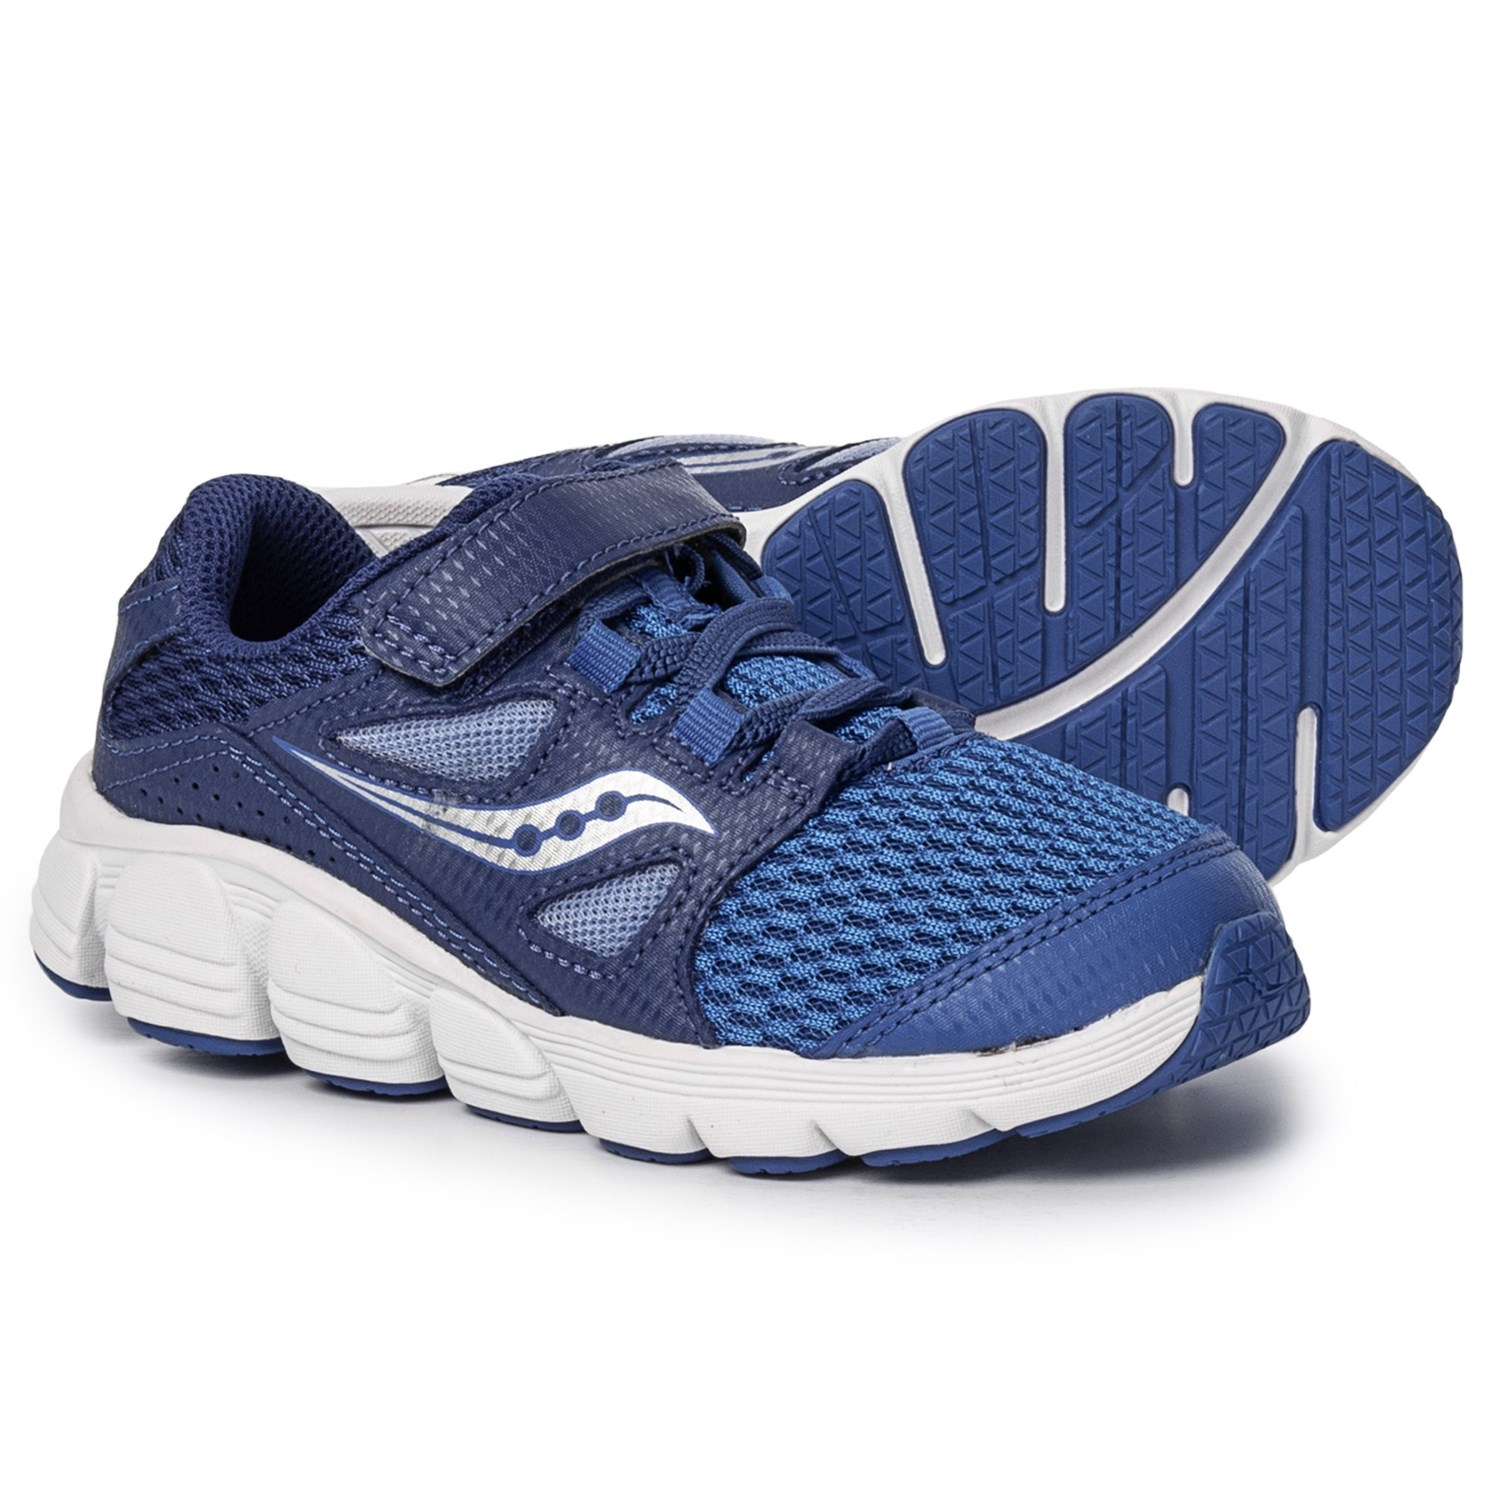 a65a8ee3f7 Saucony Kotaro 4 A/C Running Shoes (For Toddler and Little Boys)